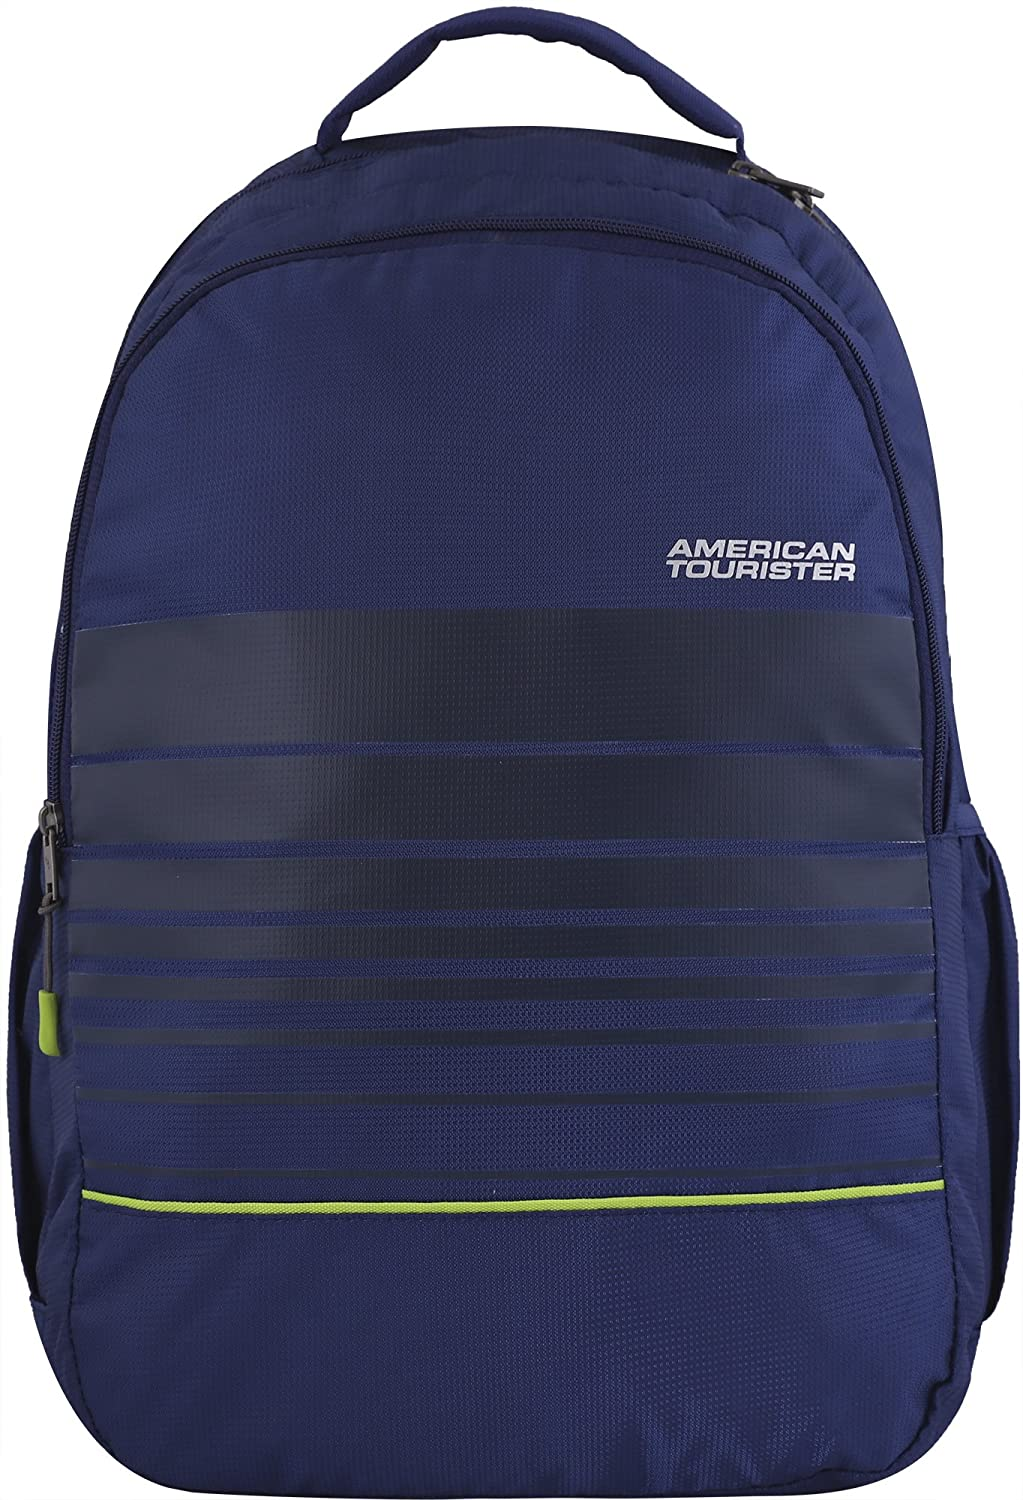 American Tourister 35L Navy Laptop Backpack (FD7(0) 01002): Amazon.es: Equipaje